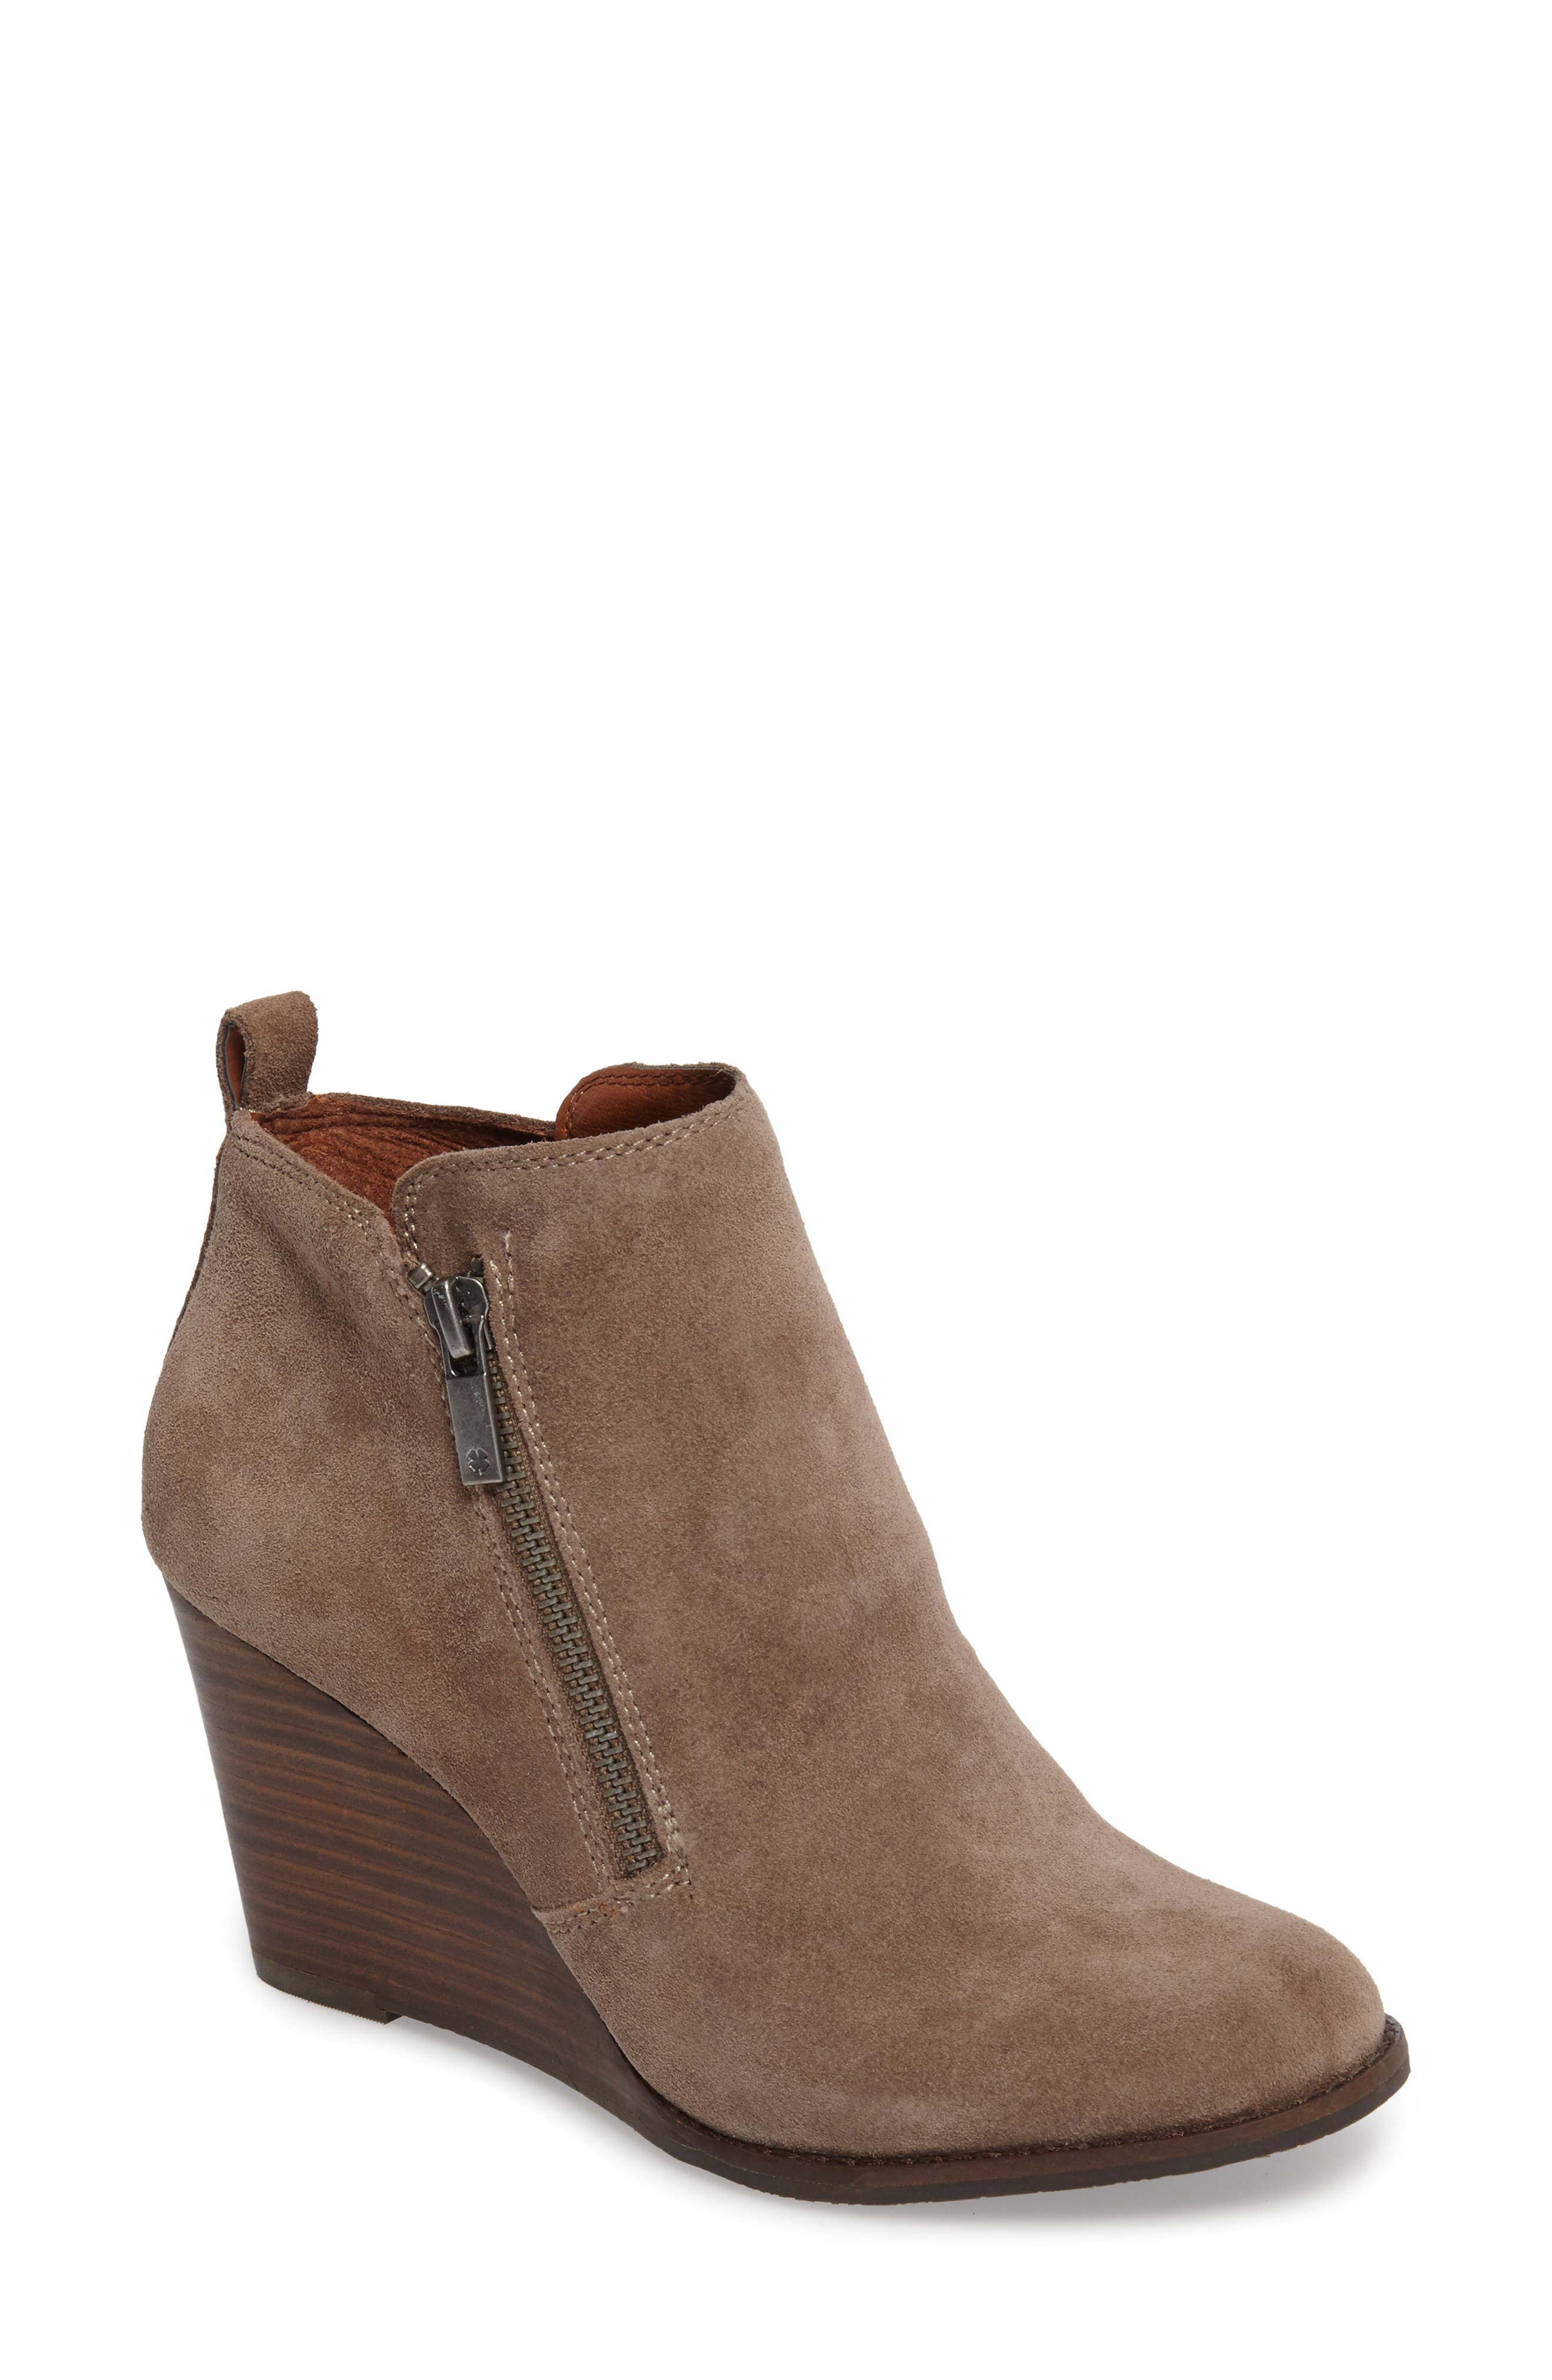 Yesterr Wedge Bootie,                             Main thumbnail 1, color,                             Brindle Suede